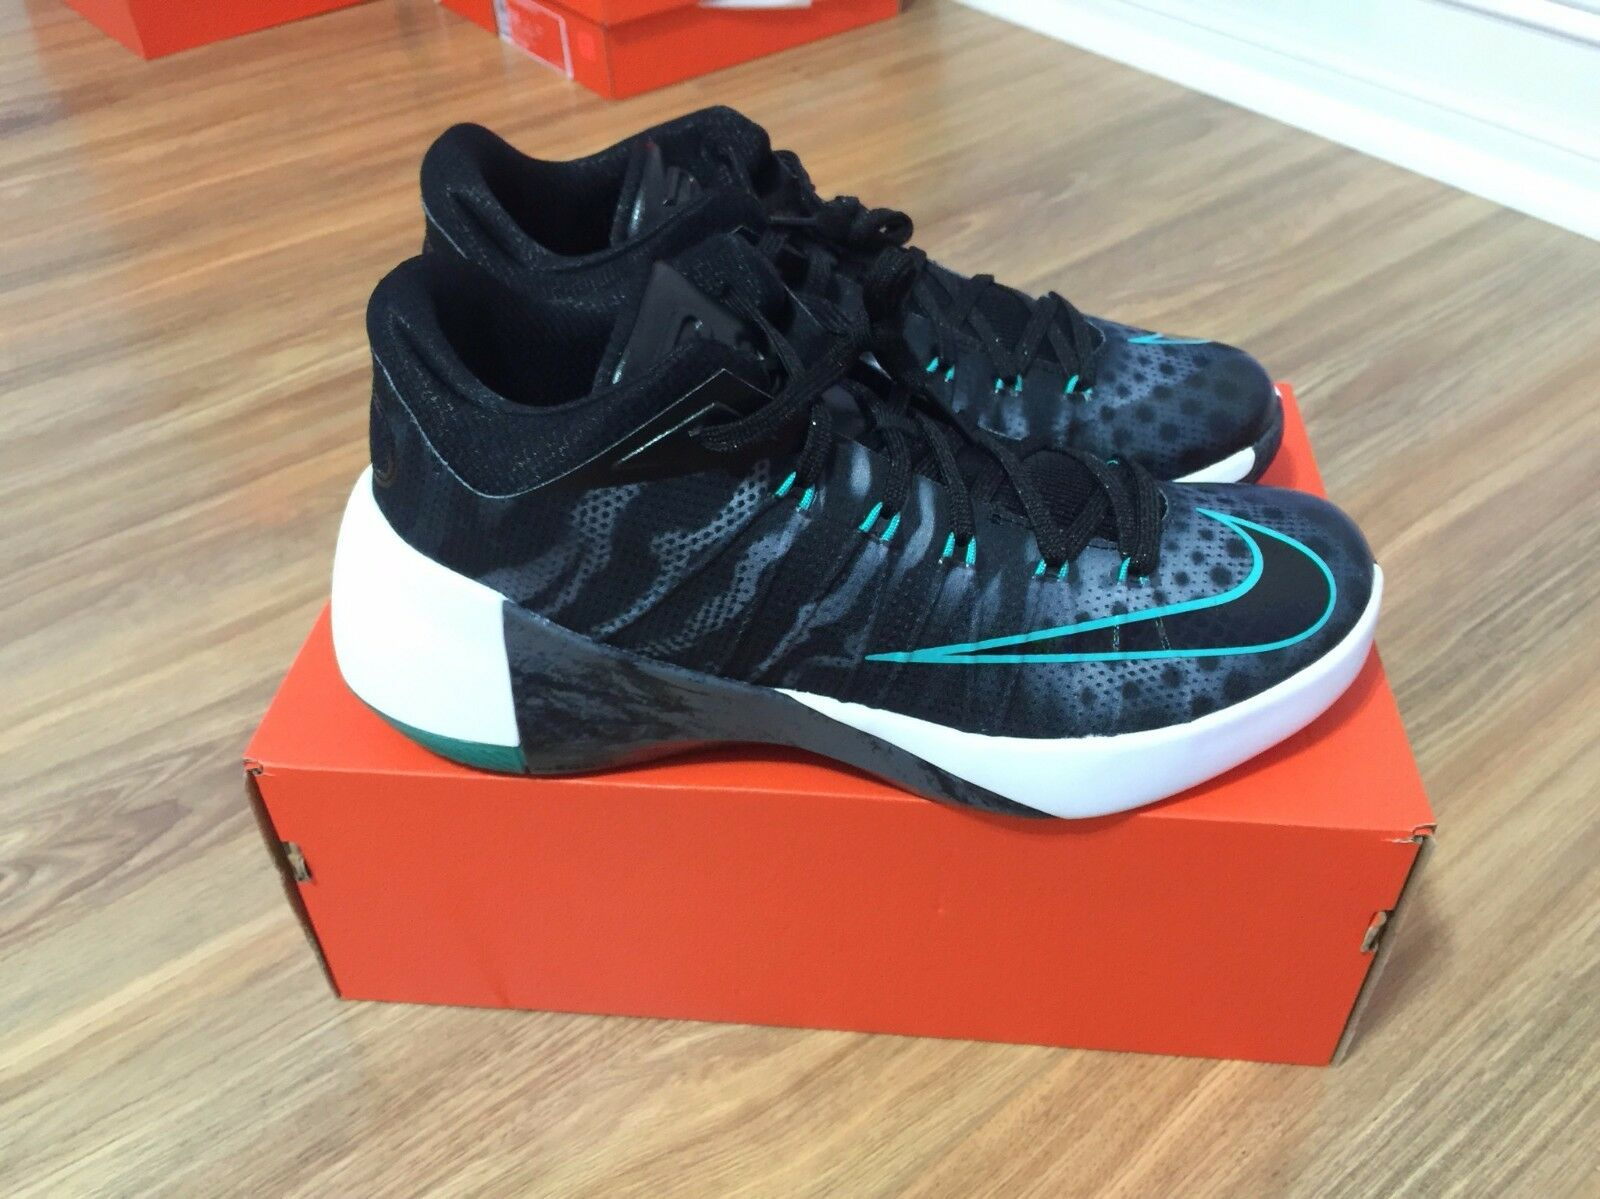 finest selection e55ec b373d ... best price nike hyperdunk 2015 2015 2015 low lmtd pe paul george uomo  basketball shoes 803174